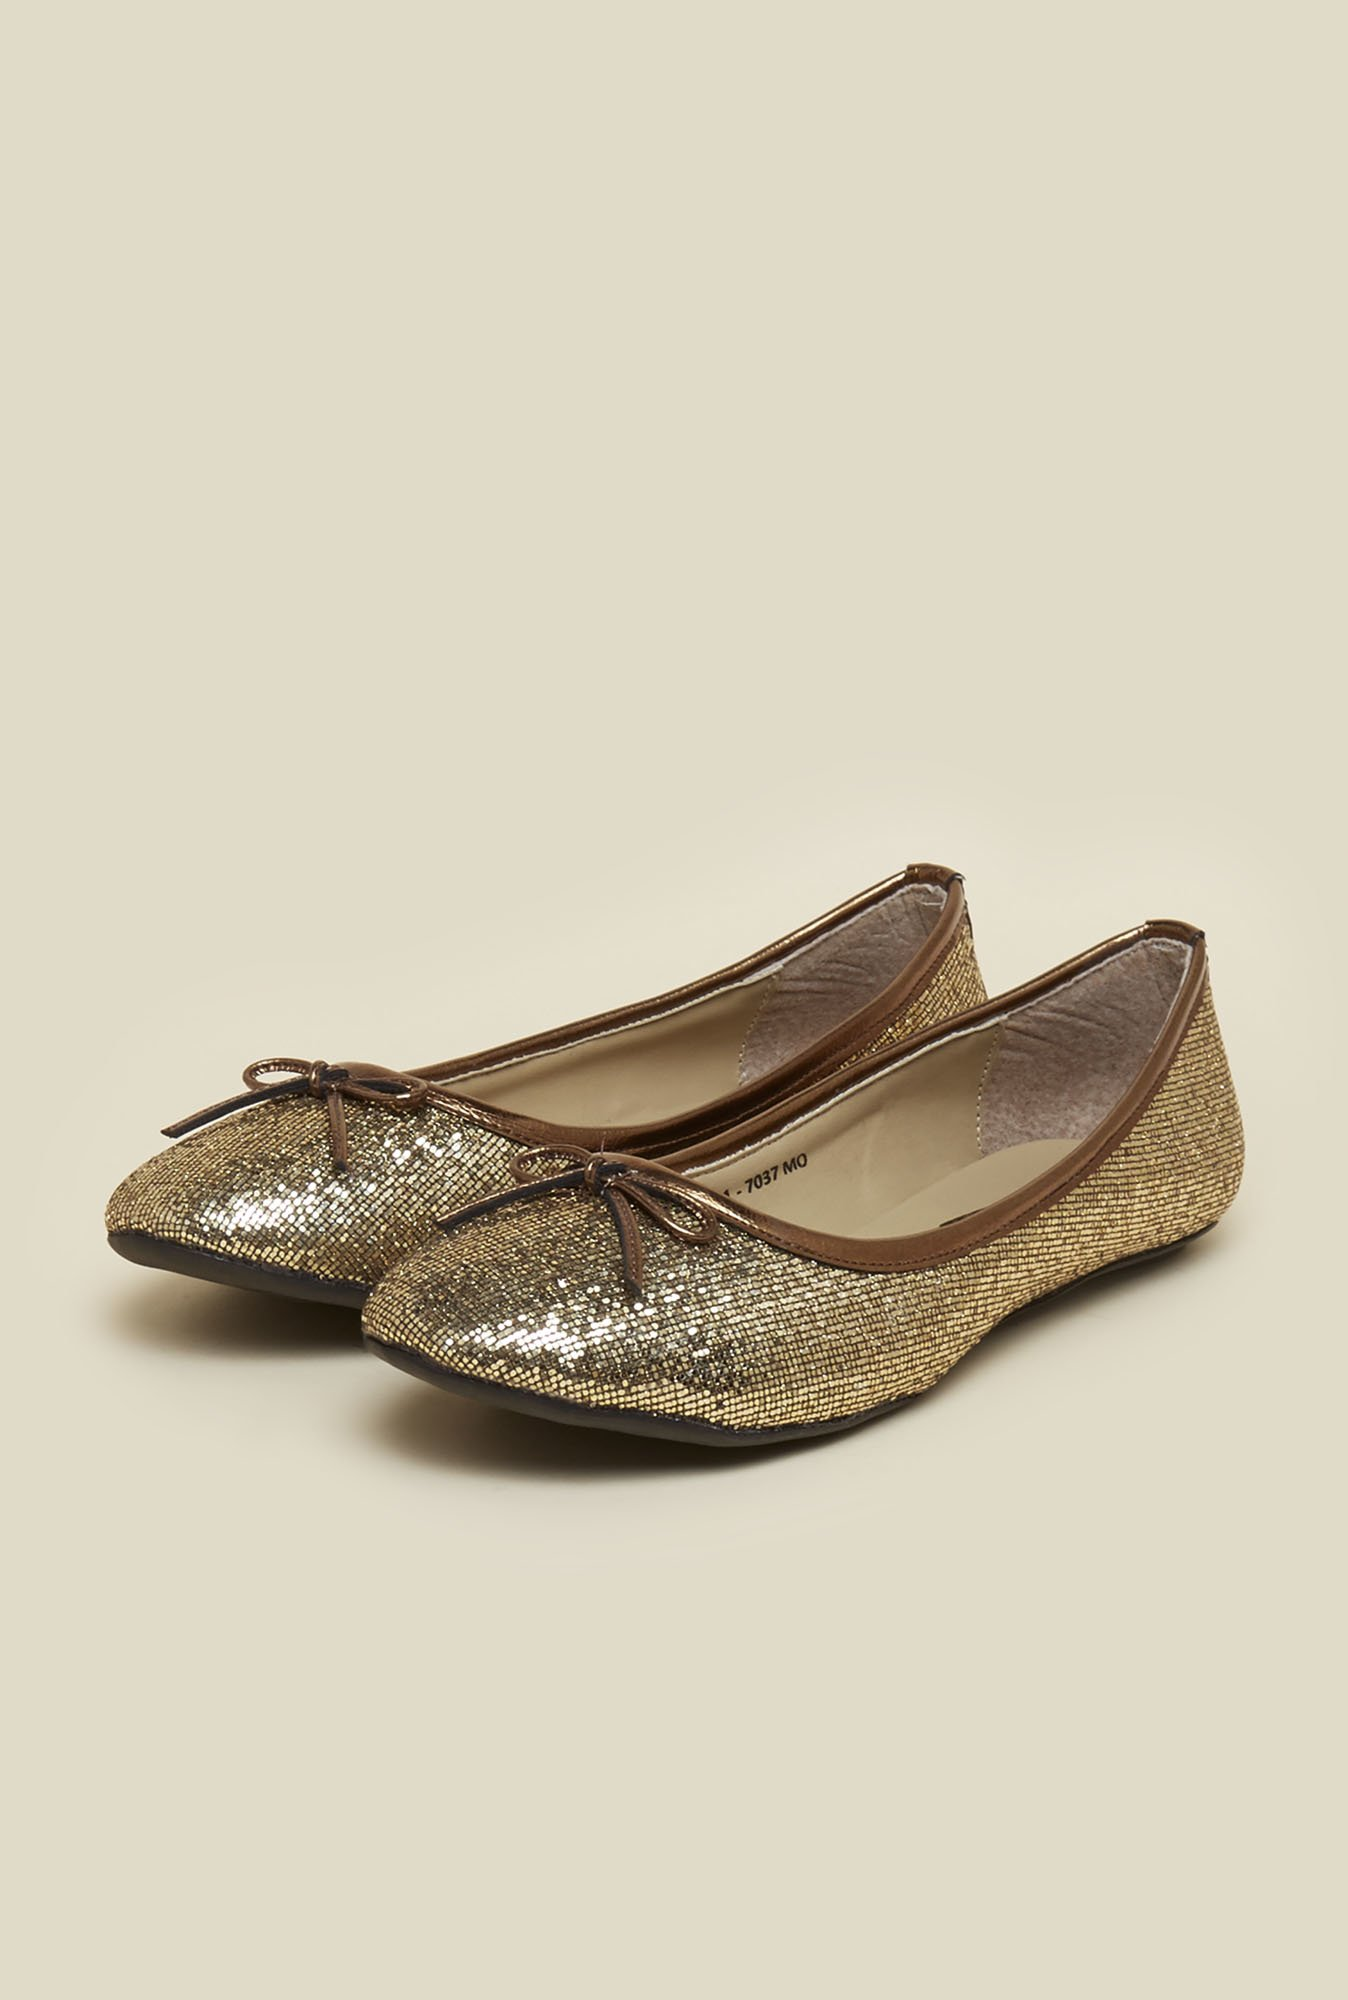 Mochi Antique Gold Ballet Flat Shoes